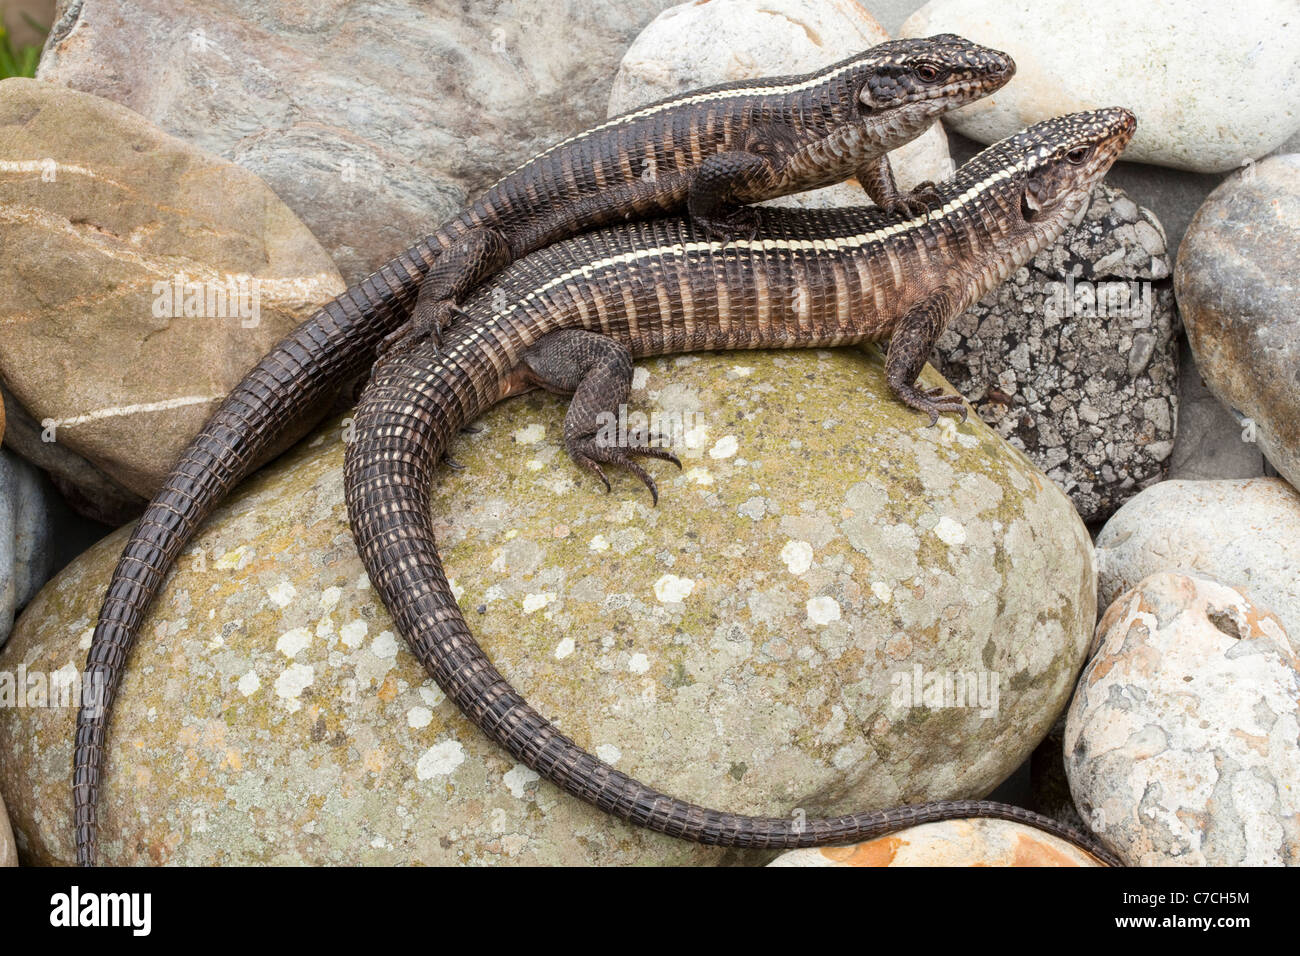 Plated Lizards (Gerrhosaurus validus). Southern and eastern Africa. - Stock Image